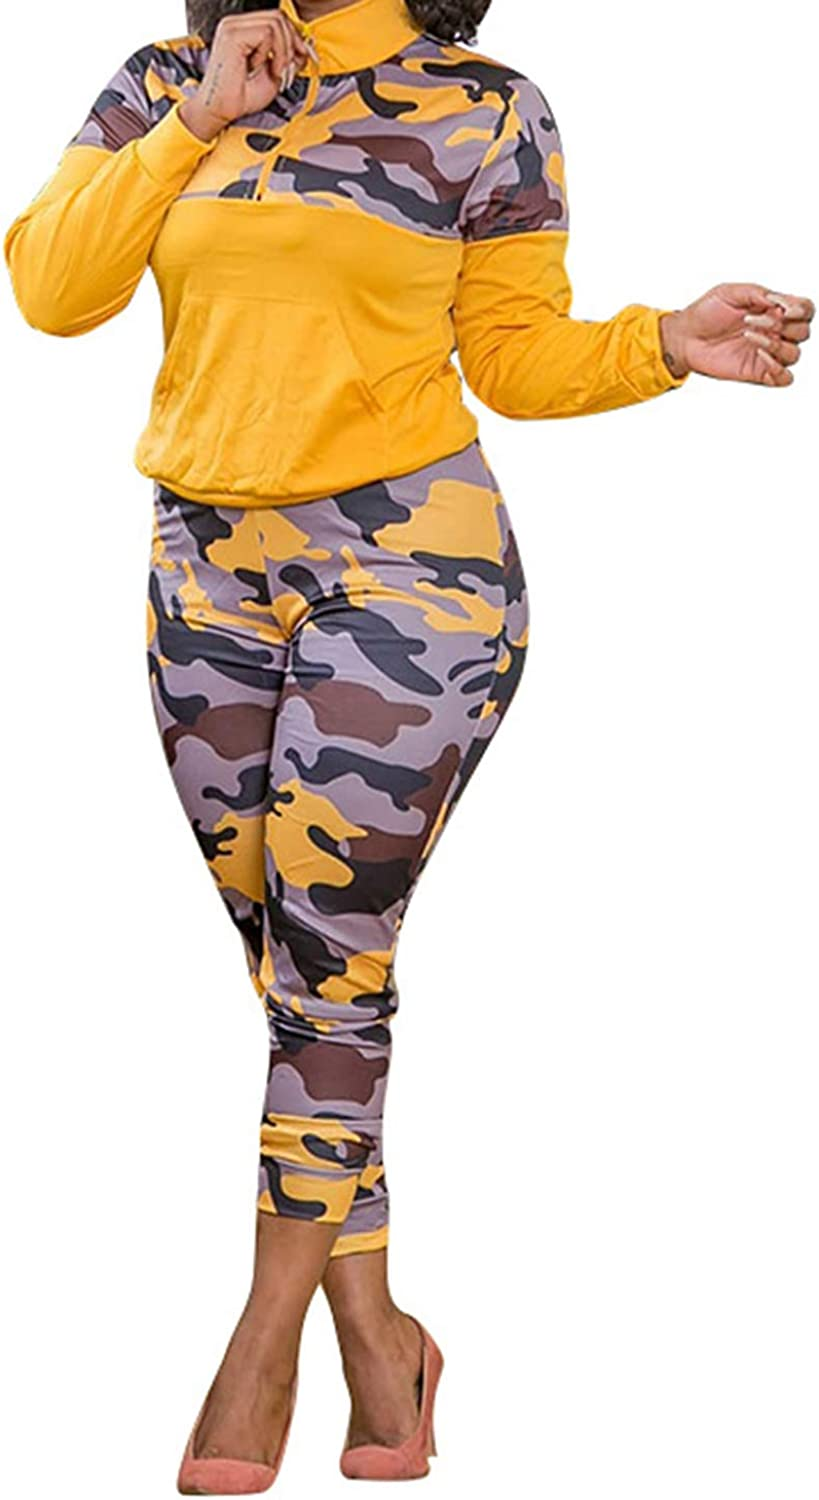 Aro Boston Max 43% OFF Mall Lora Womens Plus Size 2 Piece Sw Outfit Camo Print Tracksuit